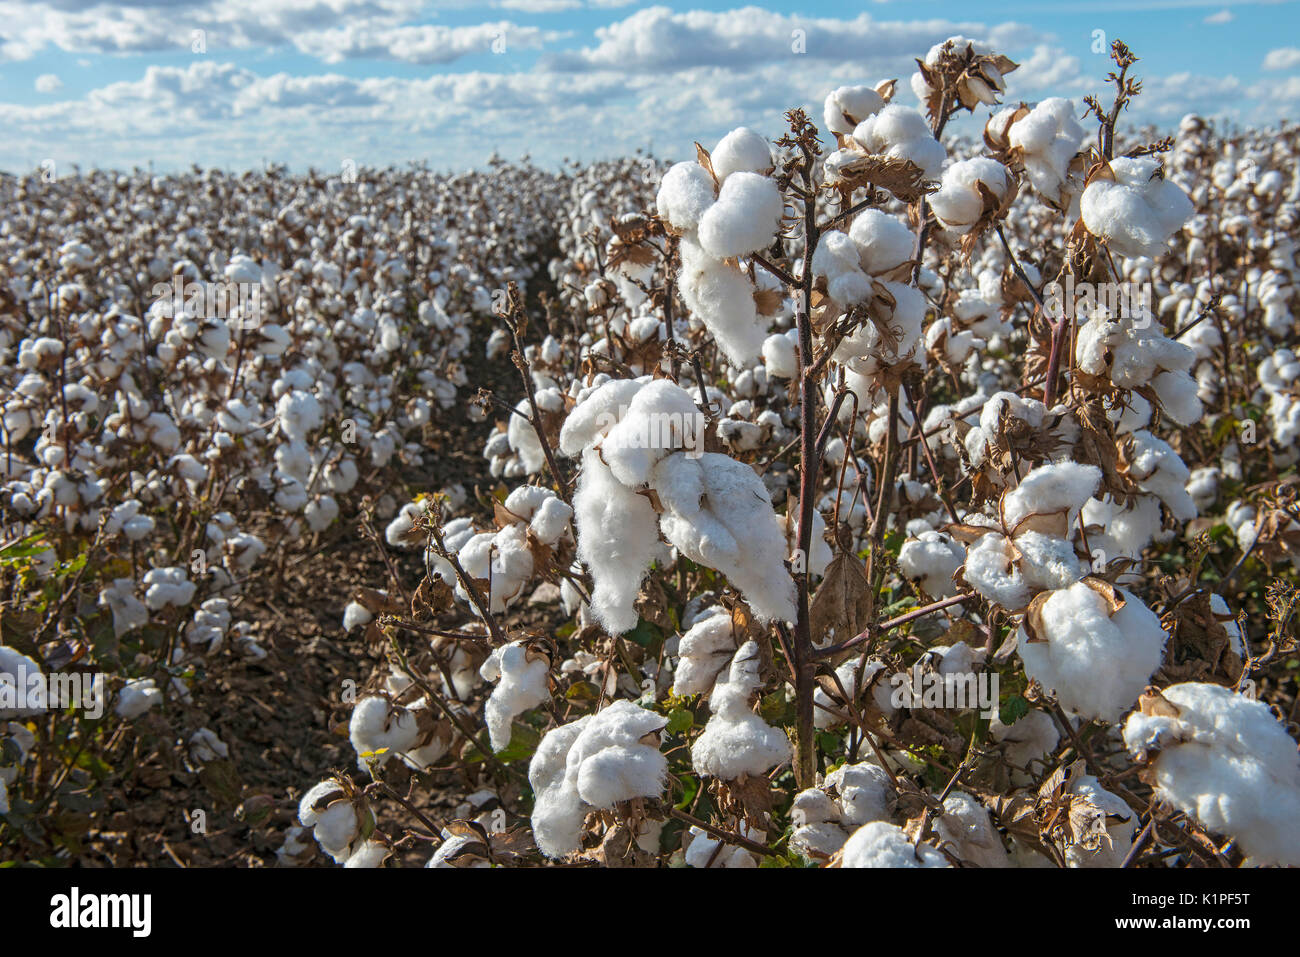 cotton field in Australia - Stock Image